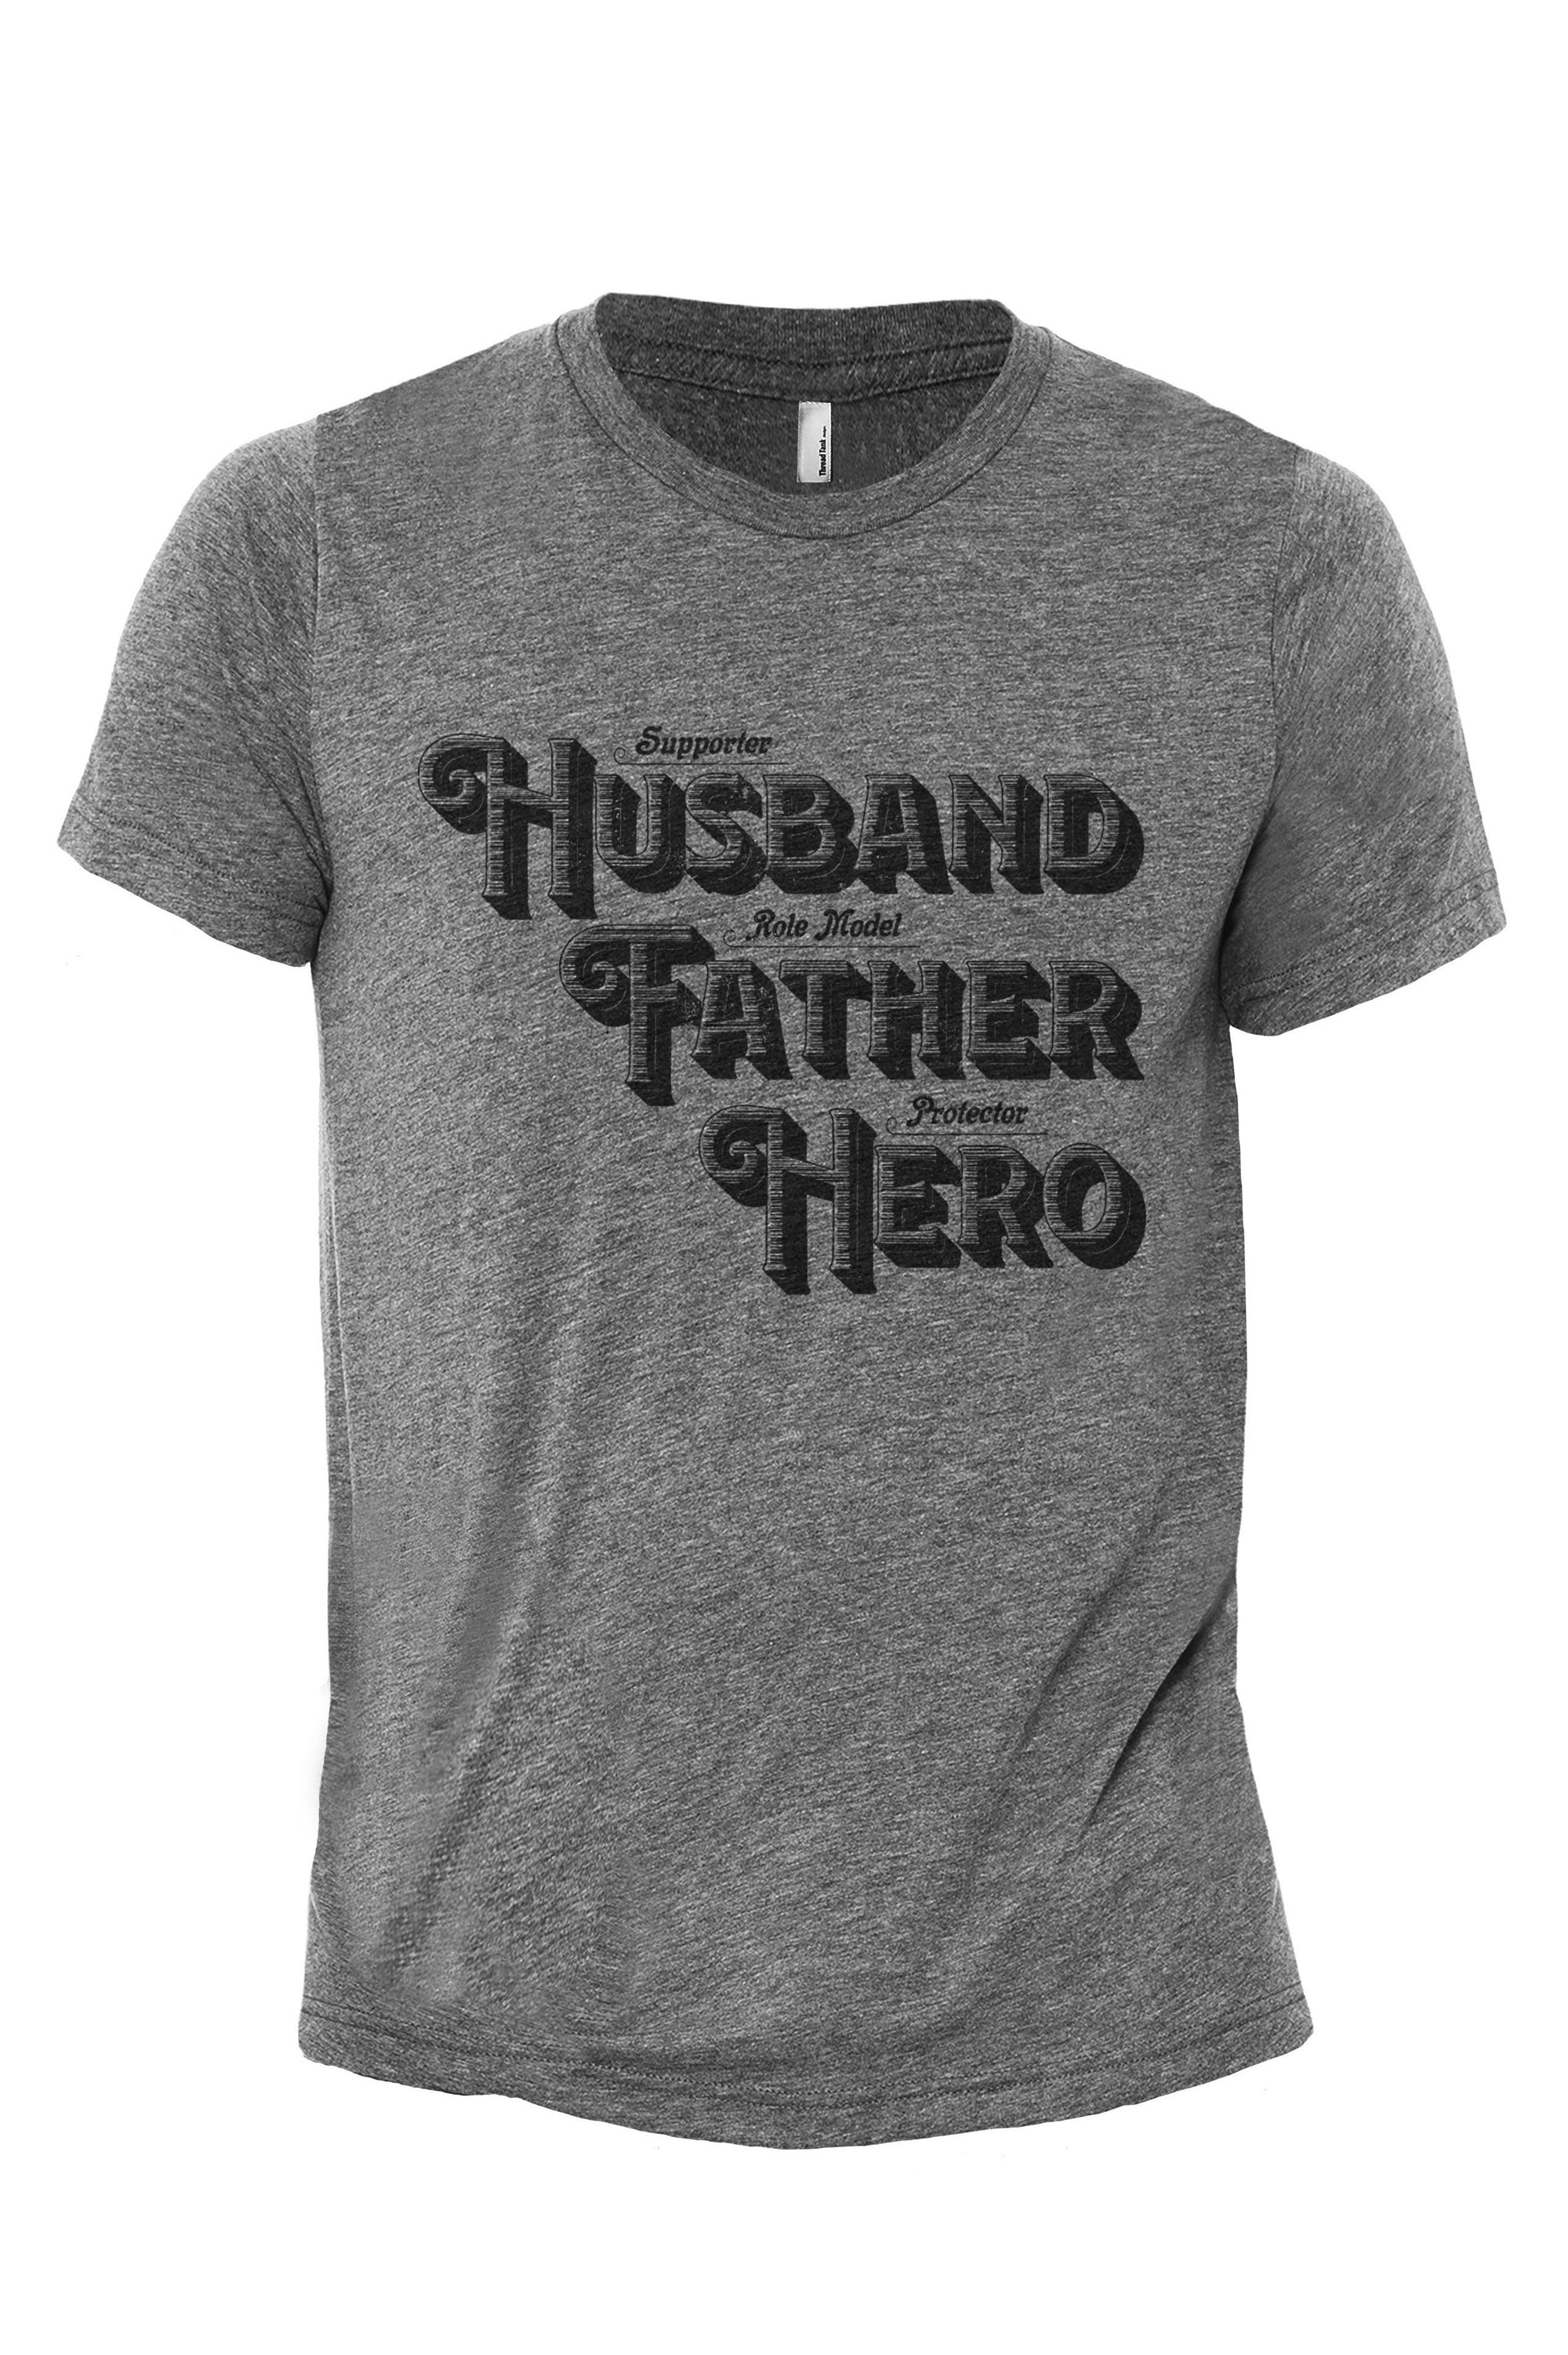 Husband Father Hero Heather Grey Printed Graphic Men's Crew T-Shirt Tee